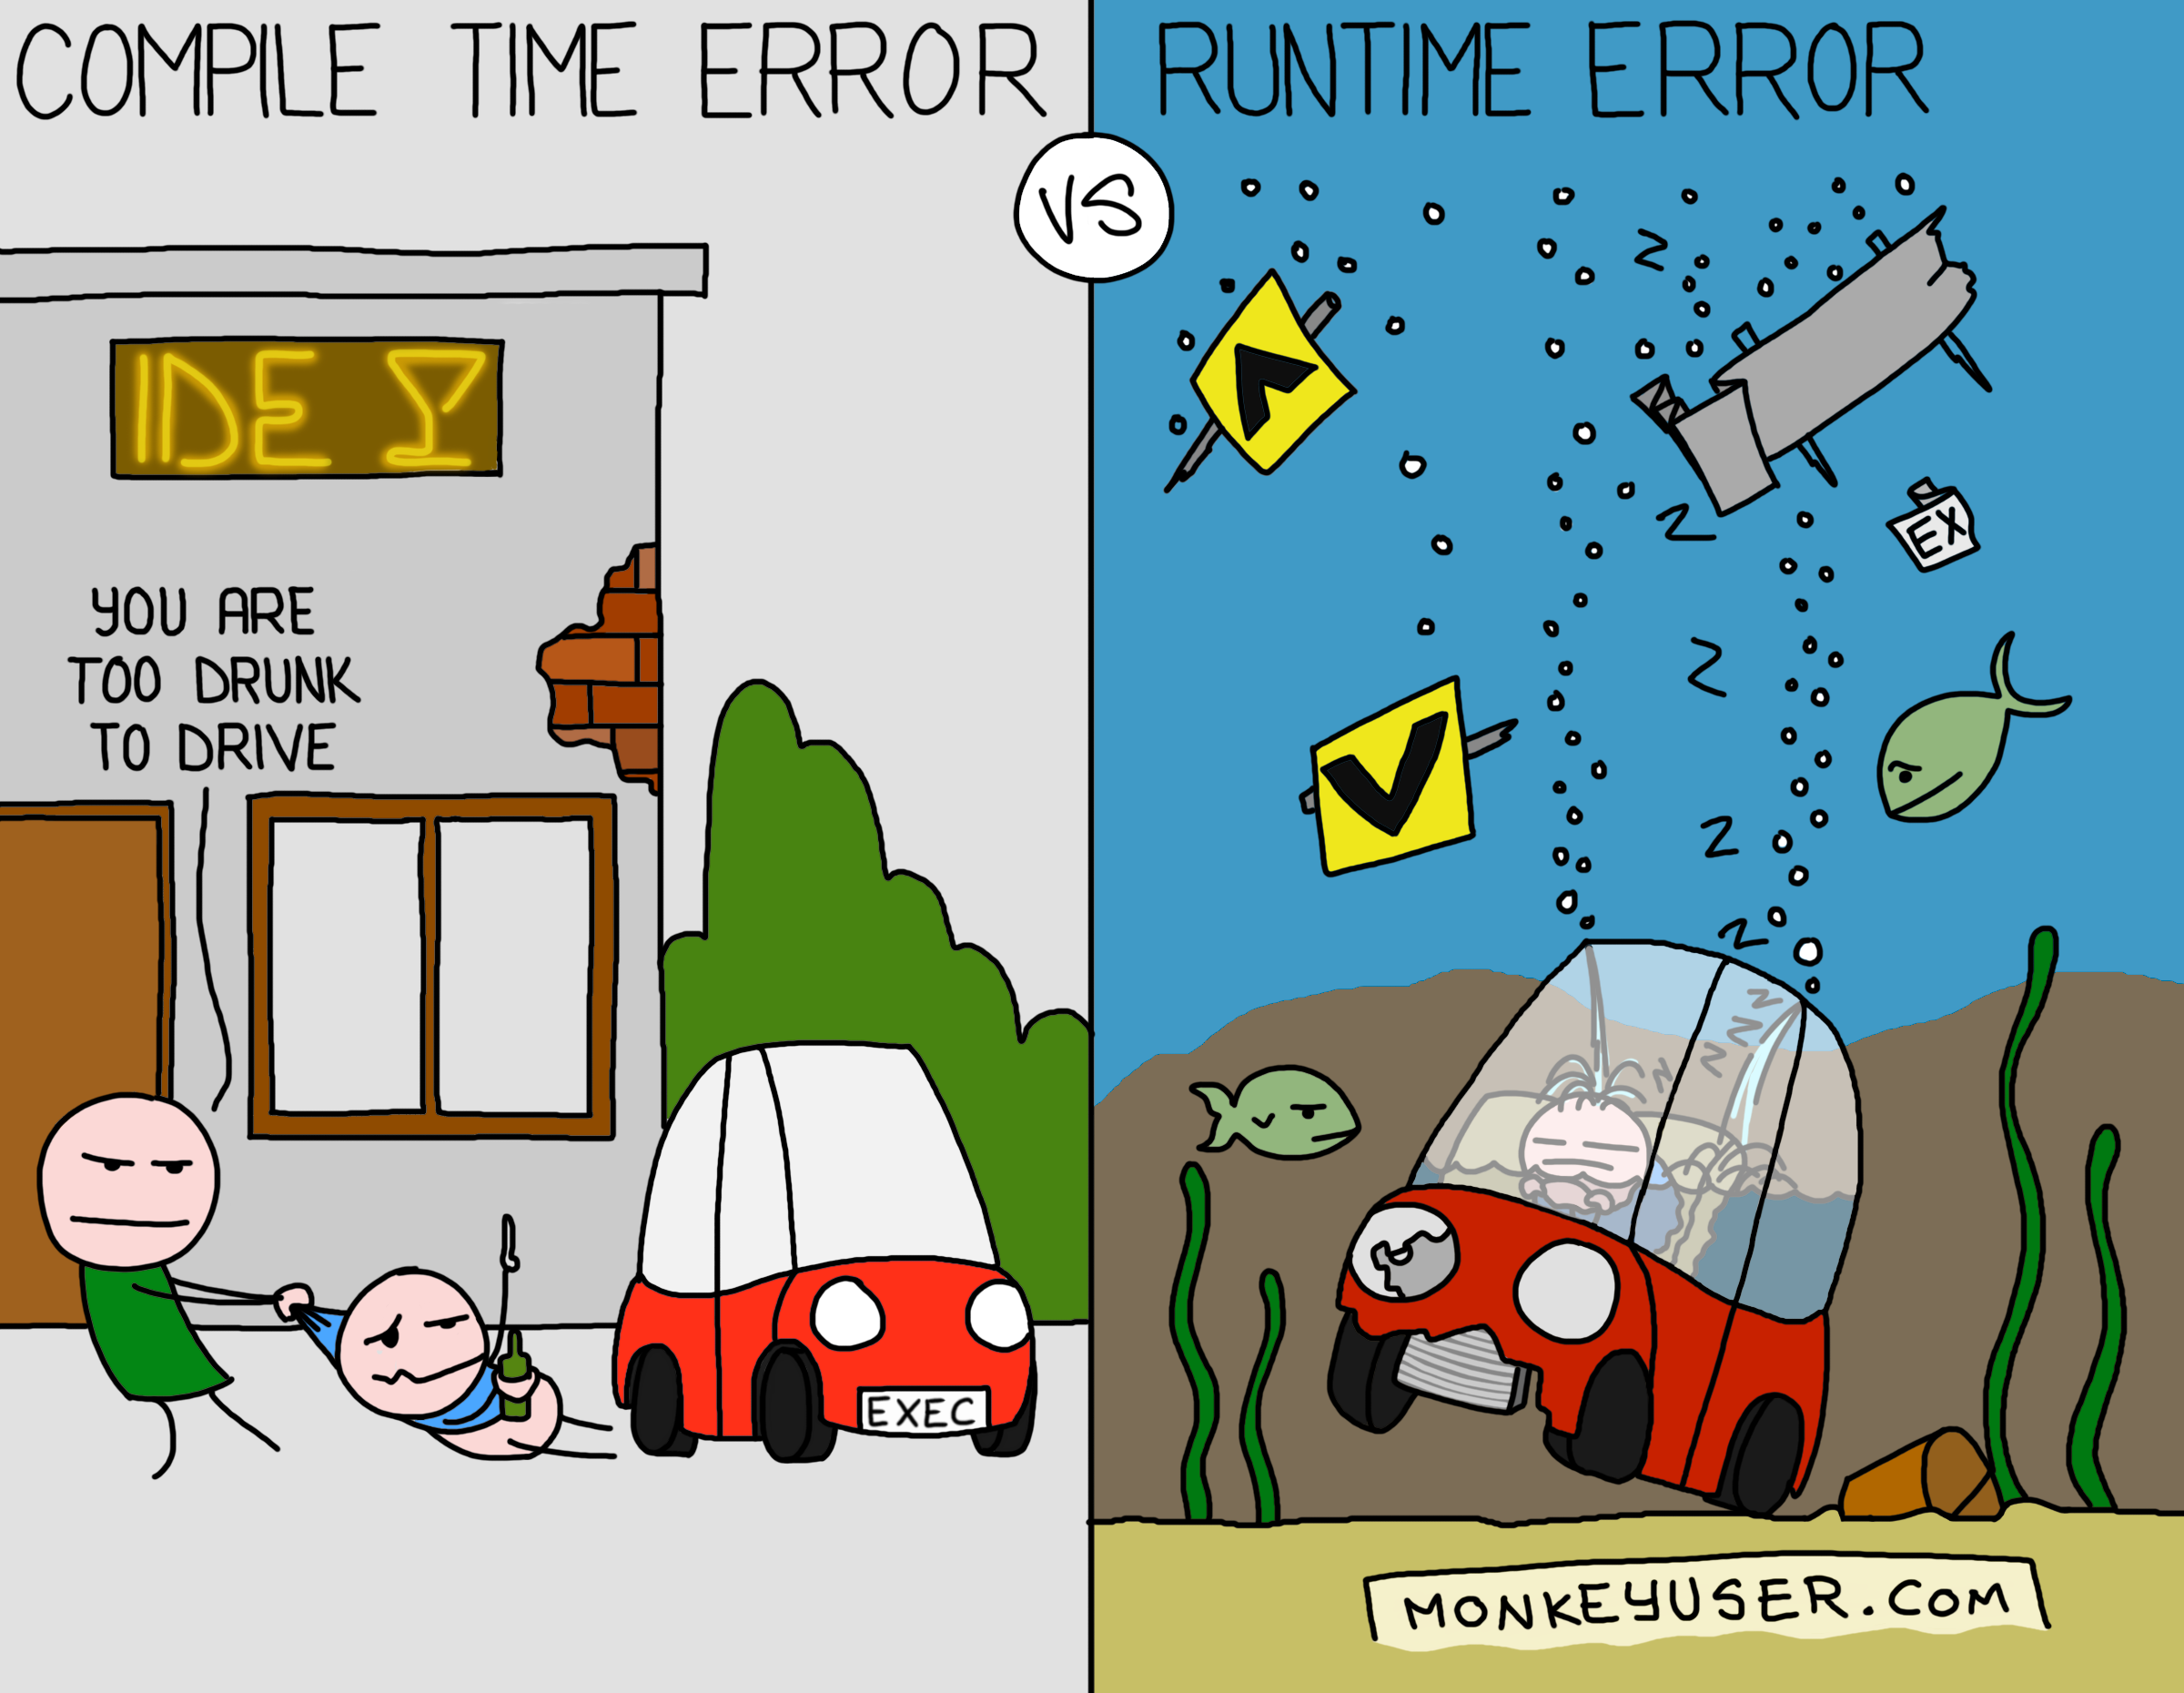 https://www.monkeyuser.com/assets/images/2017/70-runtime-vs-compile-time-errors.png